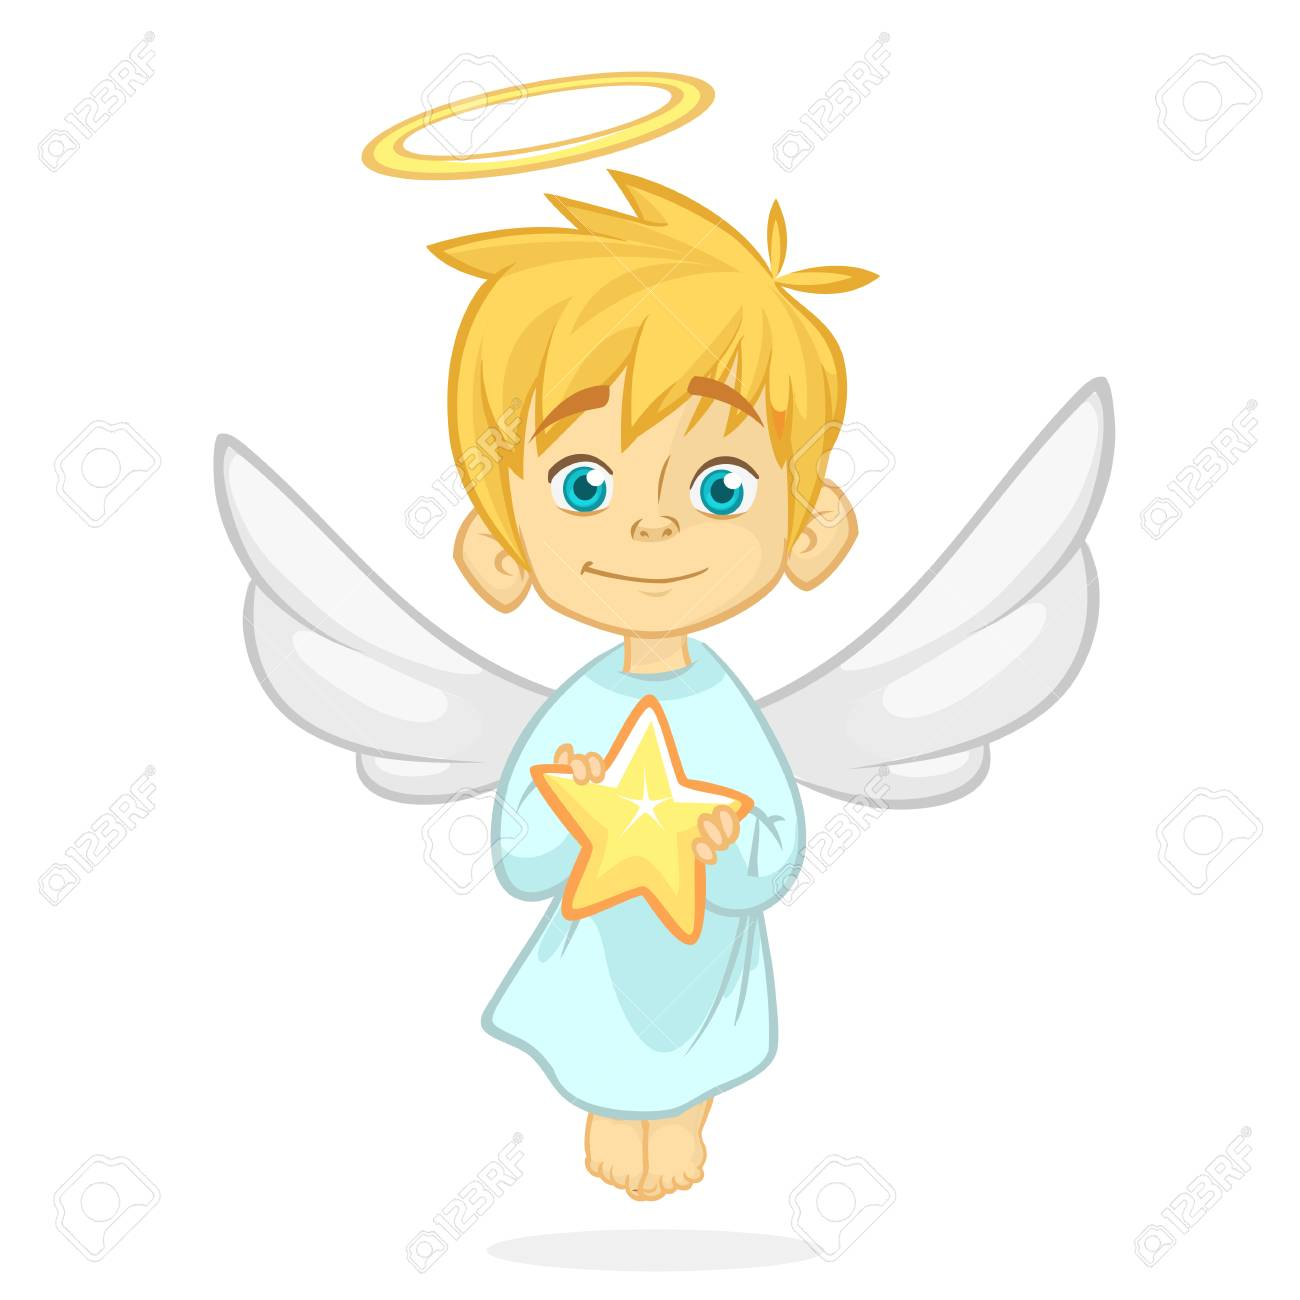 Cute Cartoon Angel Holding A Star Christmas Cartoon Vector Royalty Free Cliparts Vectors And Stock Illustration Image 90852098